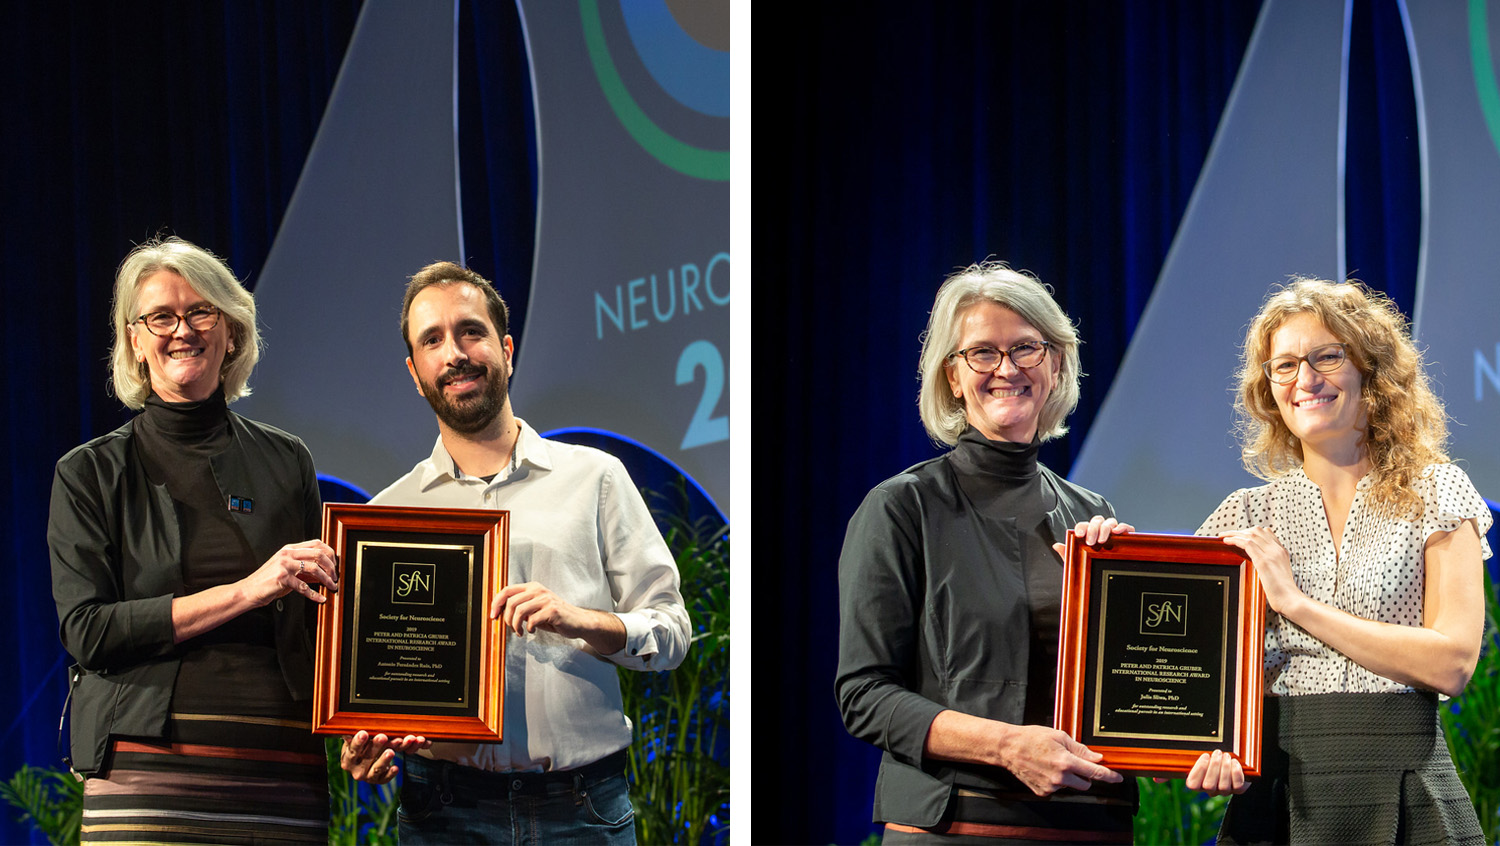 Antonio Fernández Ruiz, PhD (left), of the New York University Medical Center, and Julia Sliwa, PhD (right), of The Rockefeller University, accept the Peter and Patricia Gruber International Research Award.